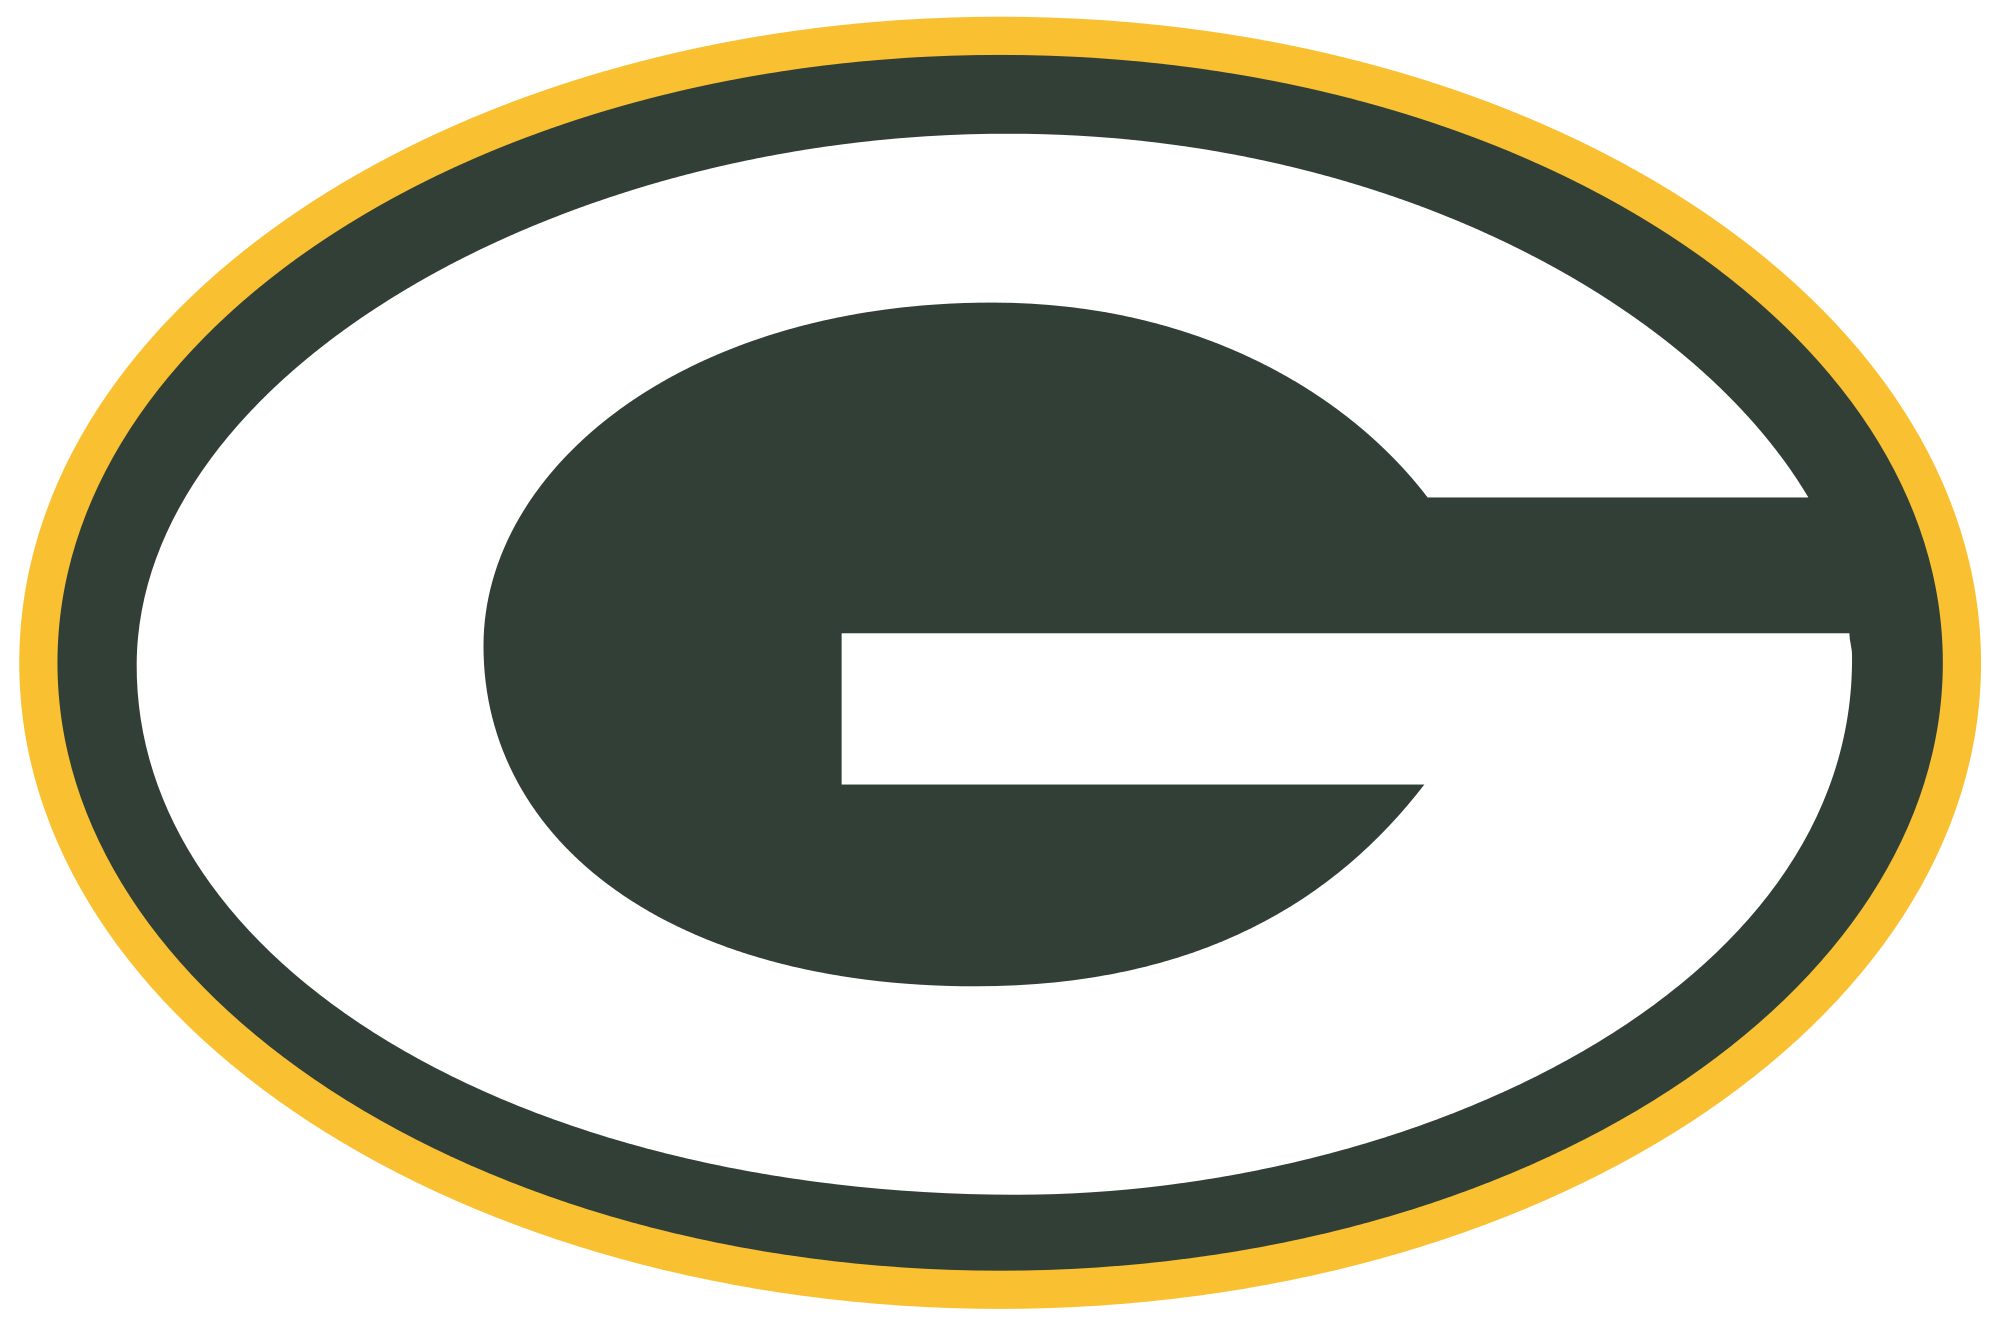 green bay packers - photo #20